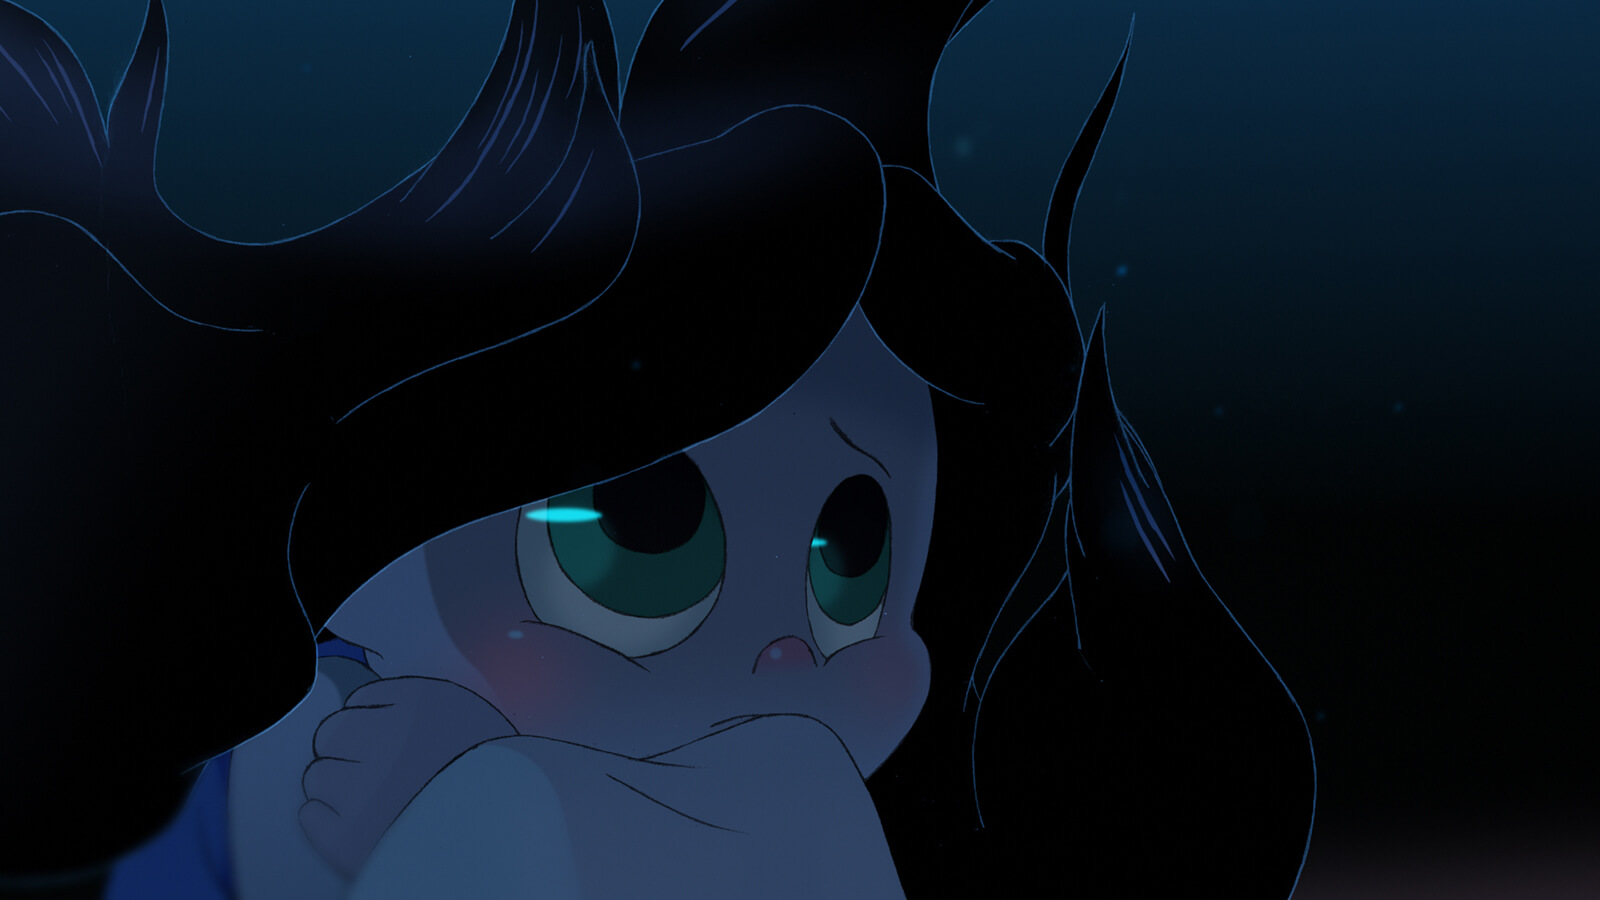 A girl with green eyes is deep underwater in the dark, her black hair floating around her as she looks up